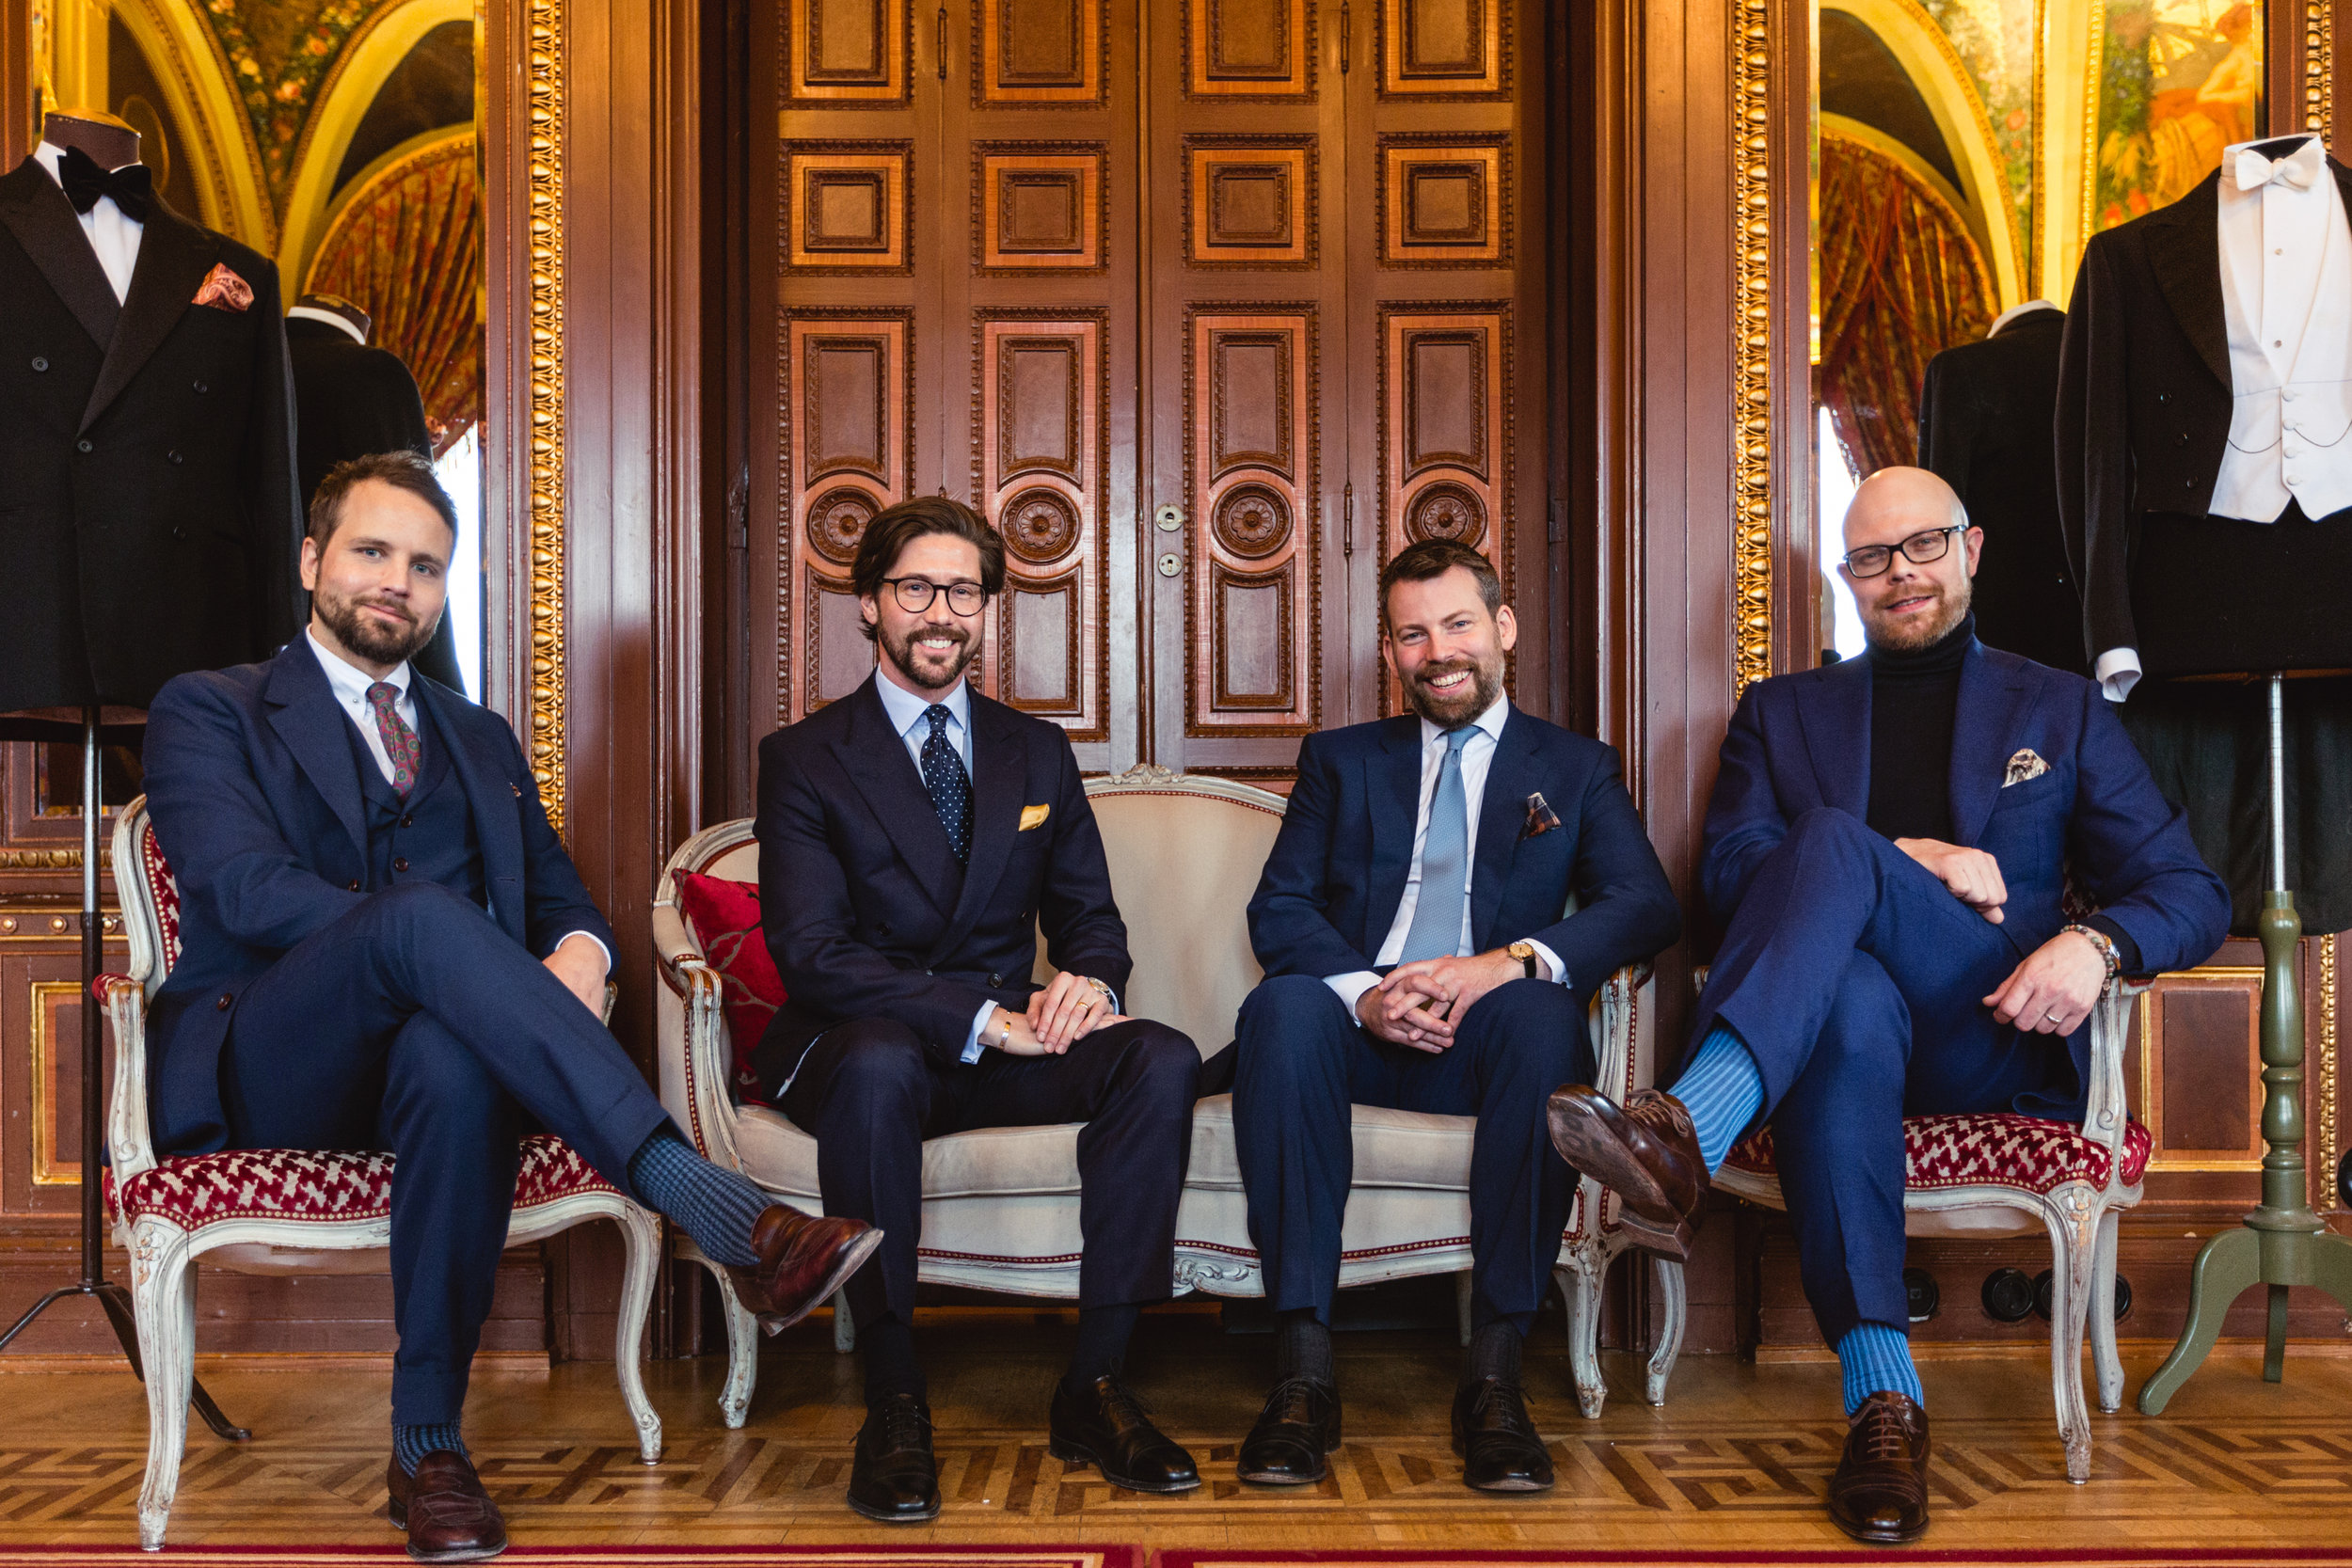 The Götrich Team in four different takes on the traditional business suit.